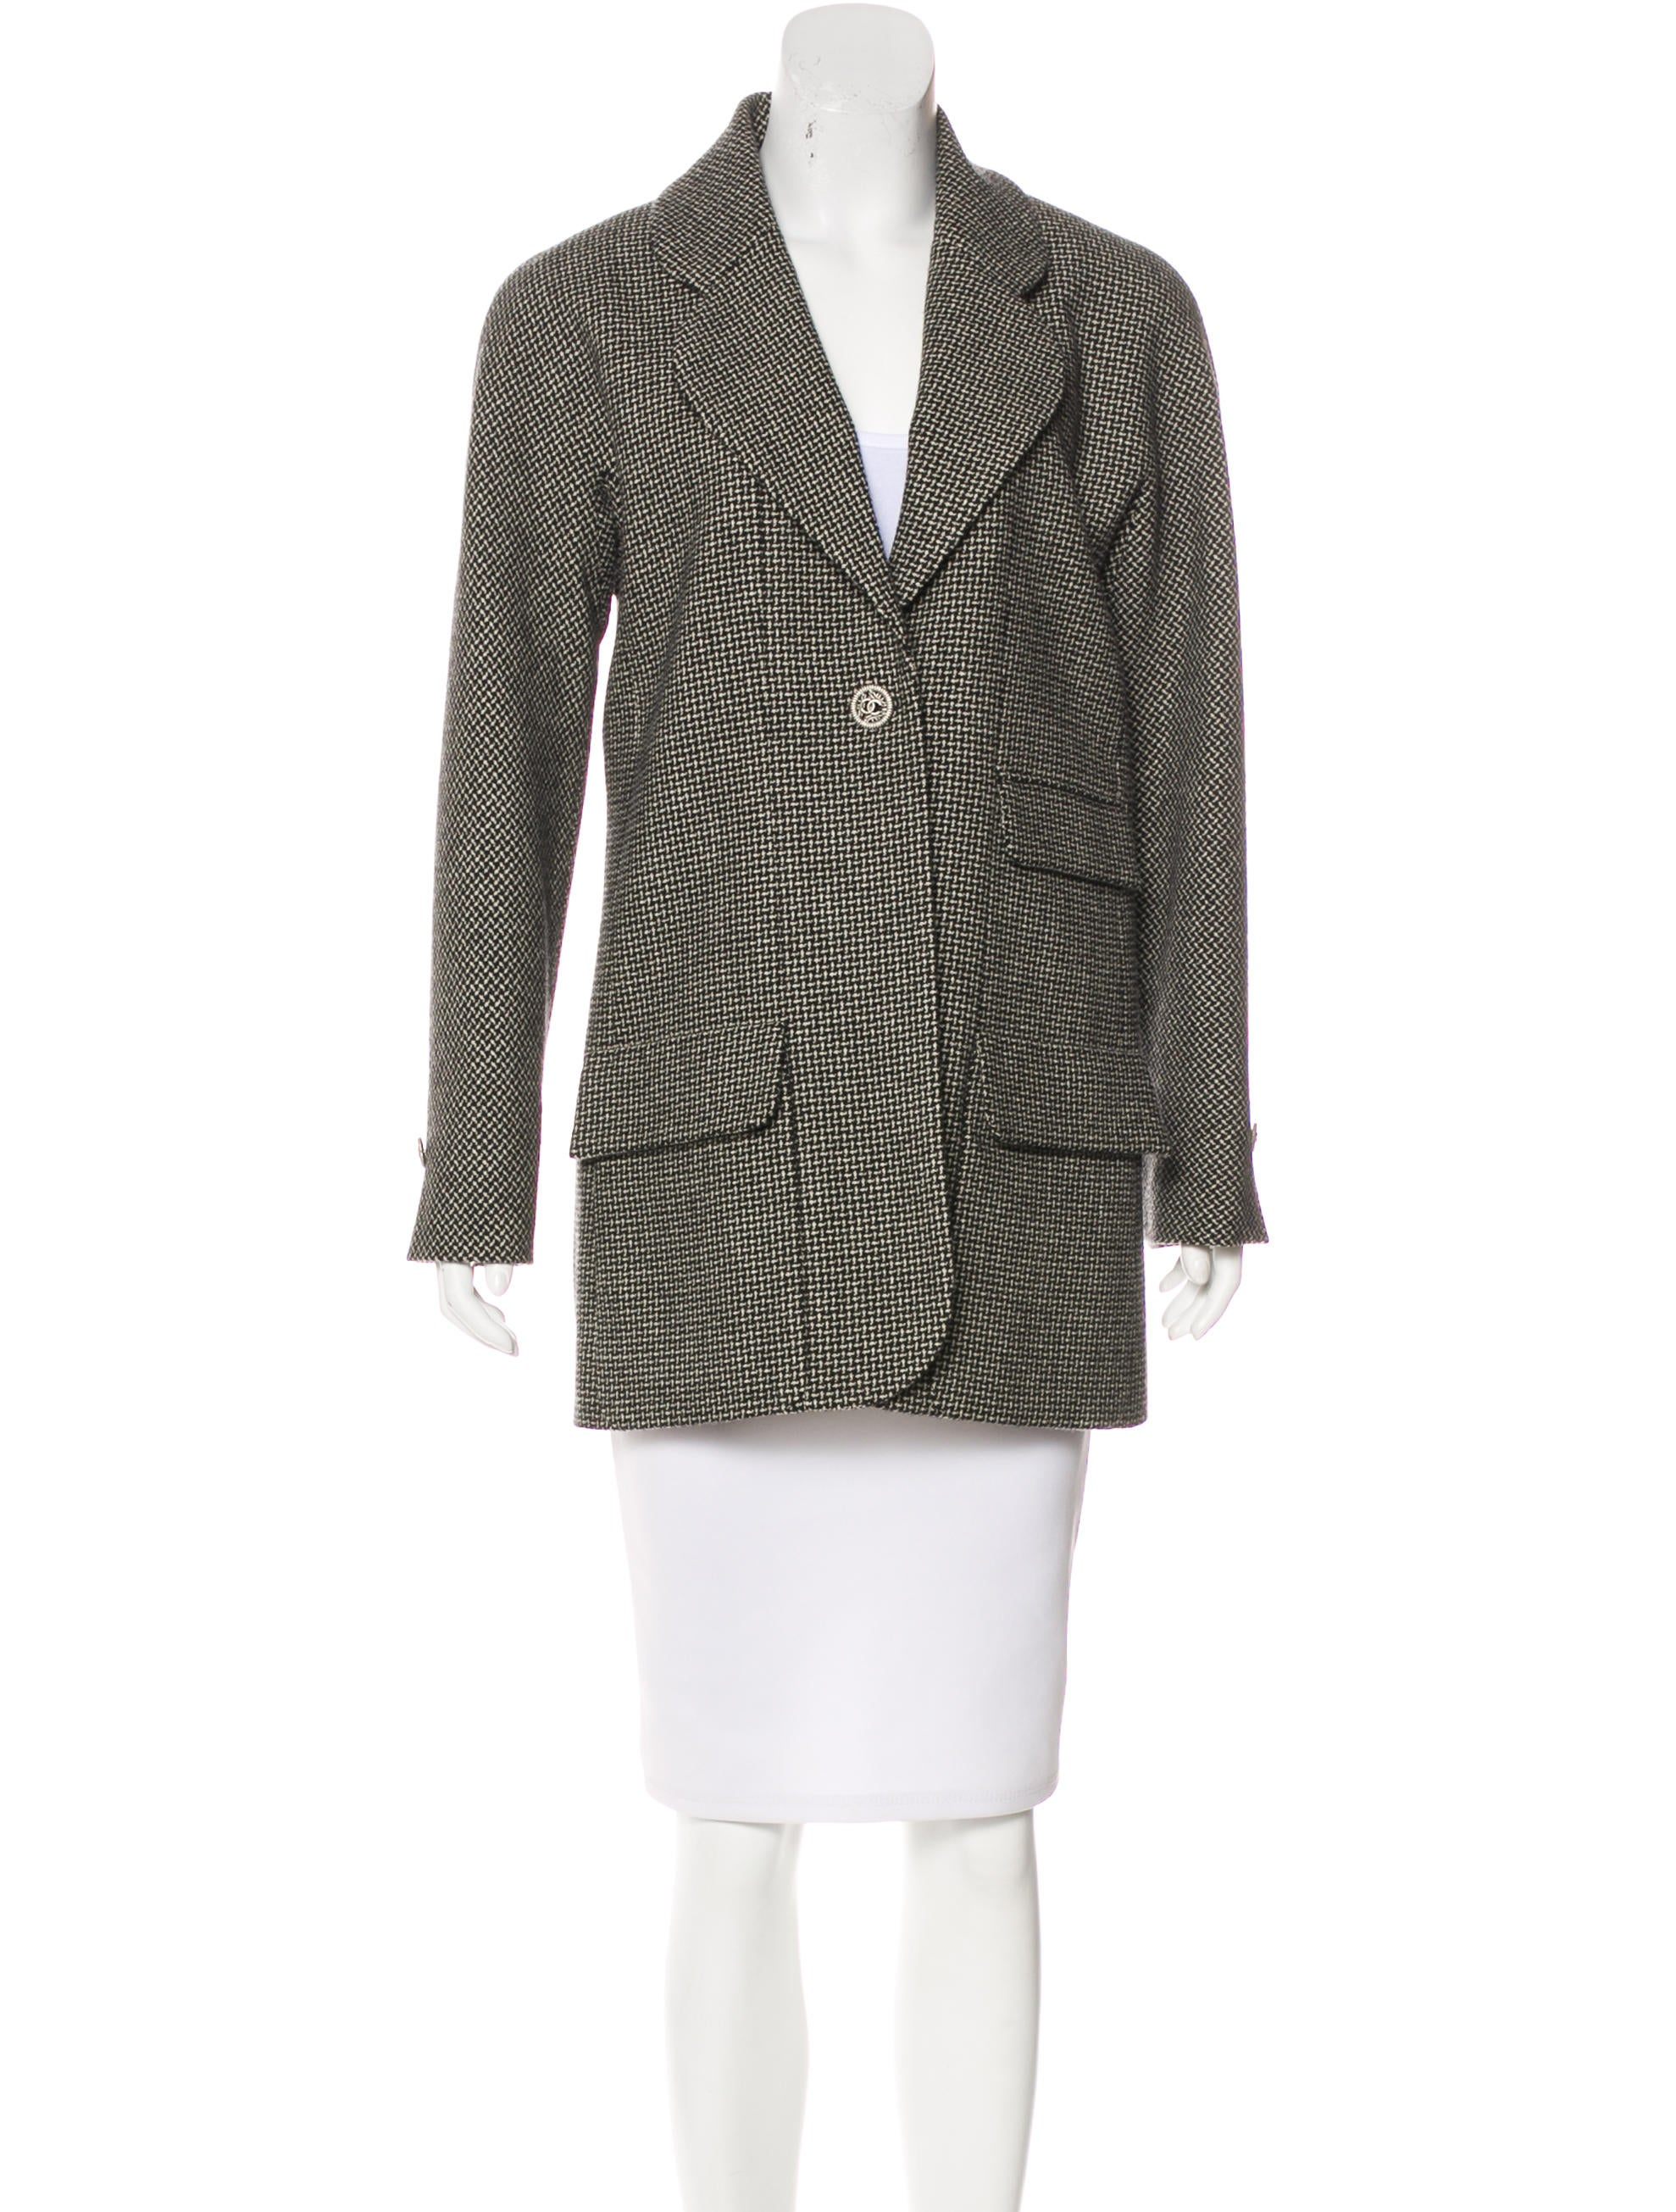 Pendleton crafts women's wool jackets & blazers from luxurious, premium wool. Shop casual blazers for women now.